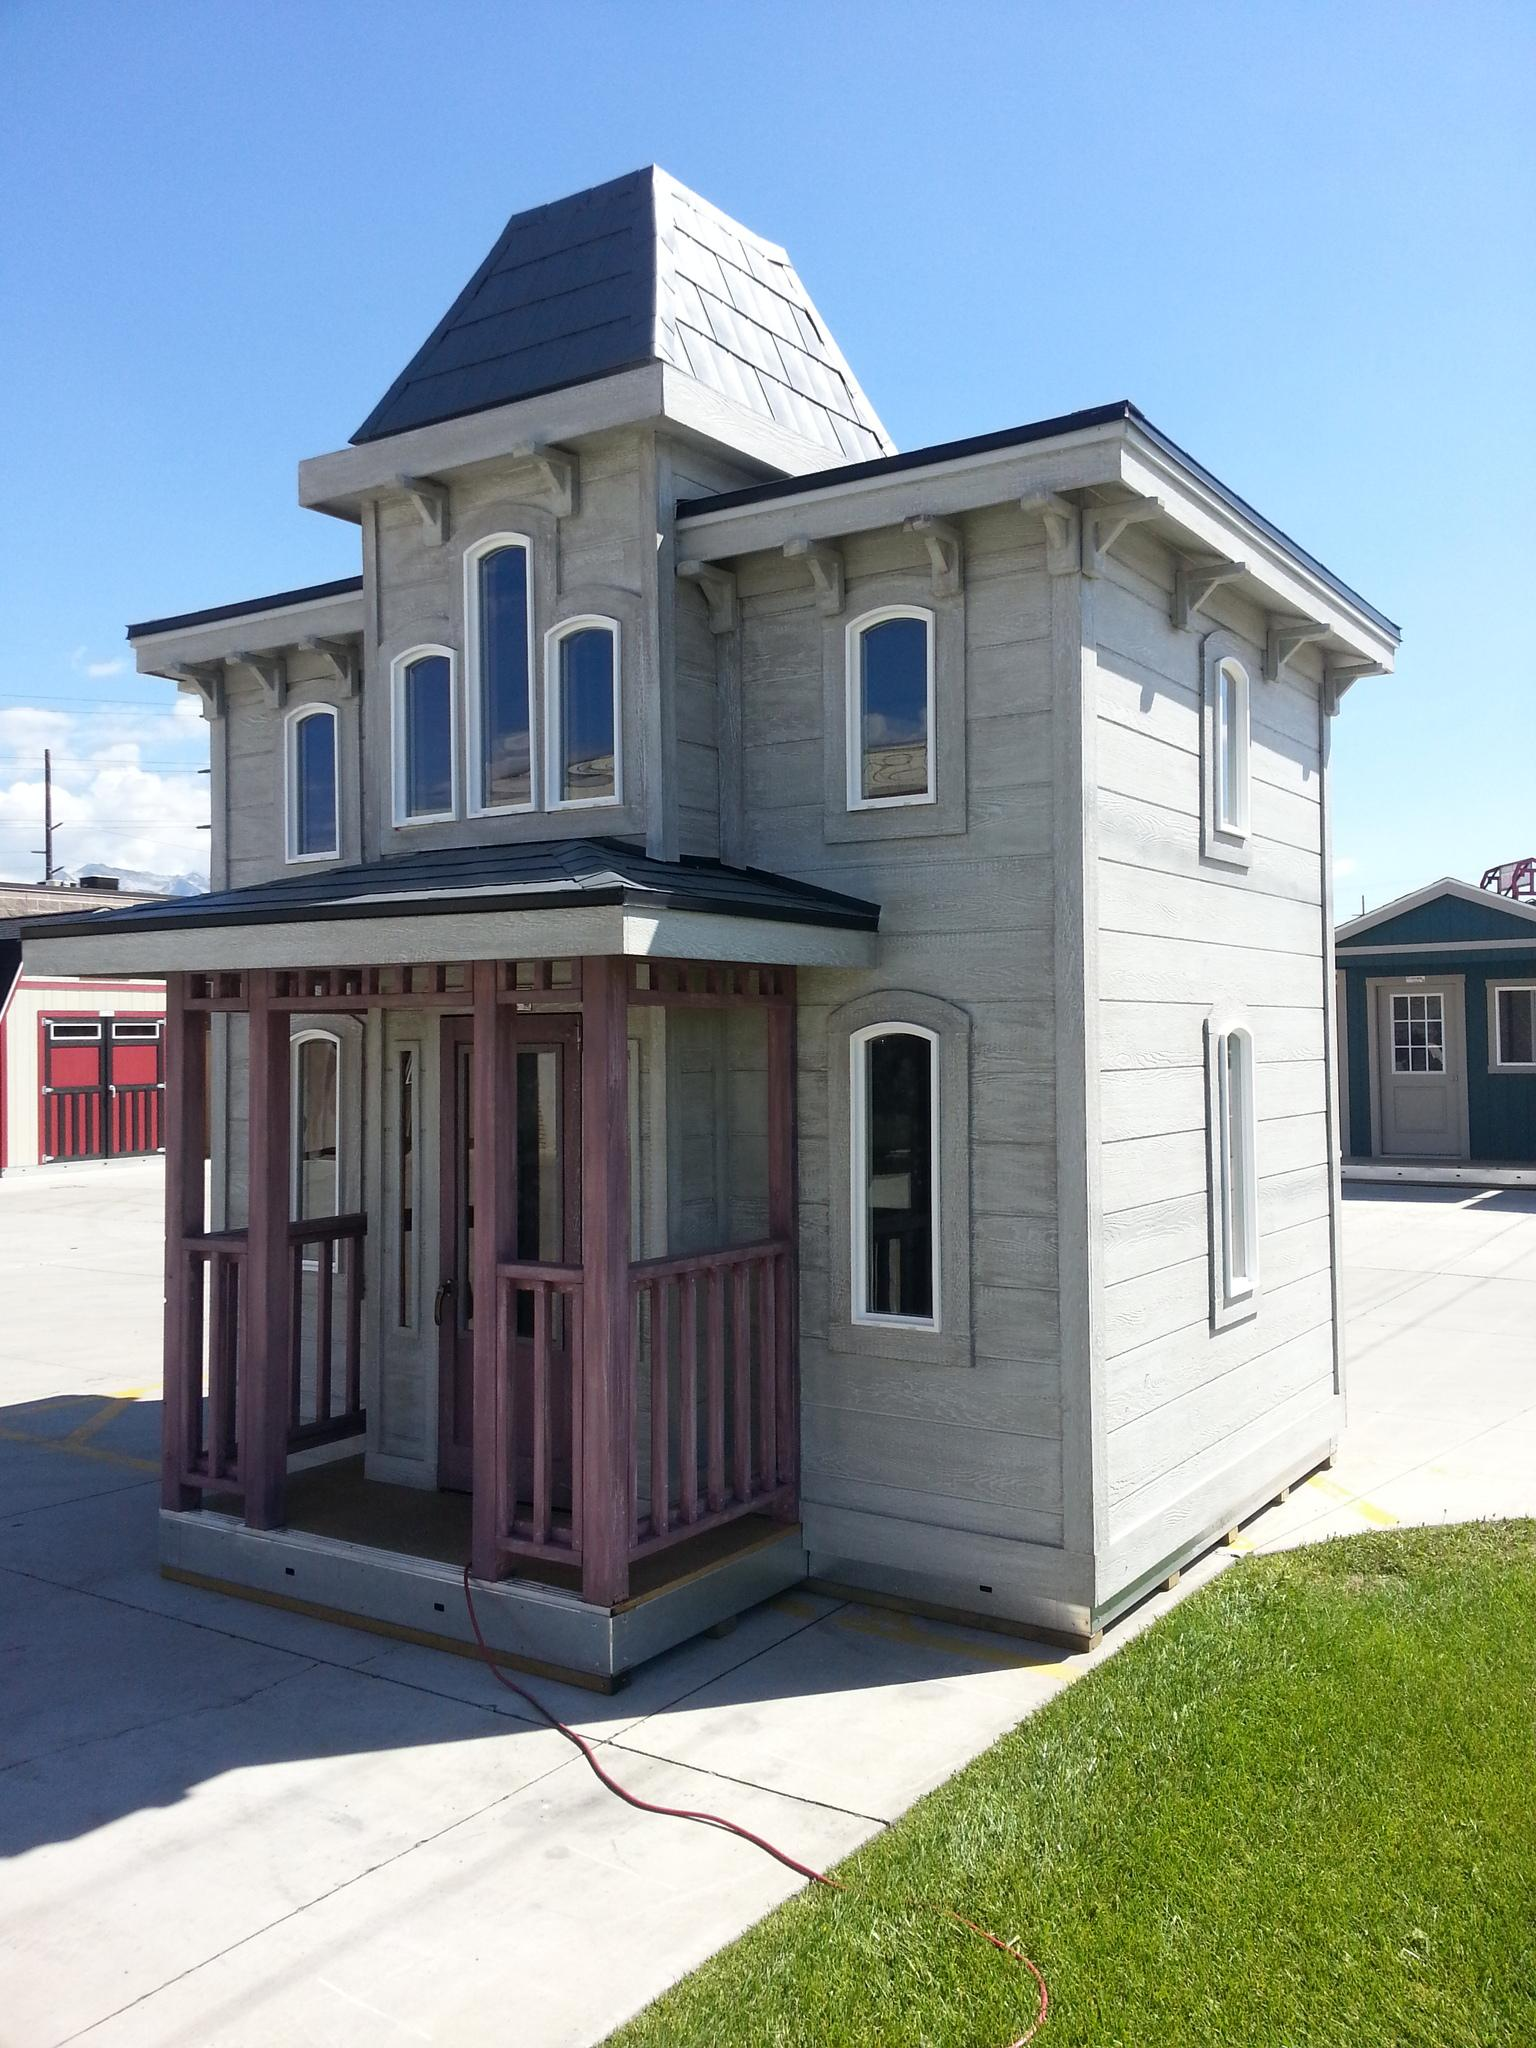 Tuff shed tuffshed twitter for 2 story shed house